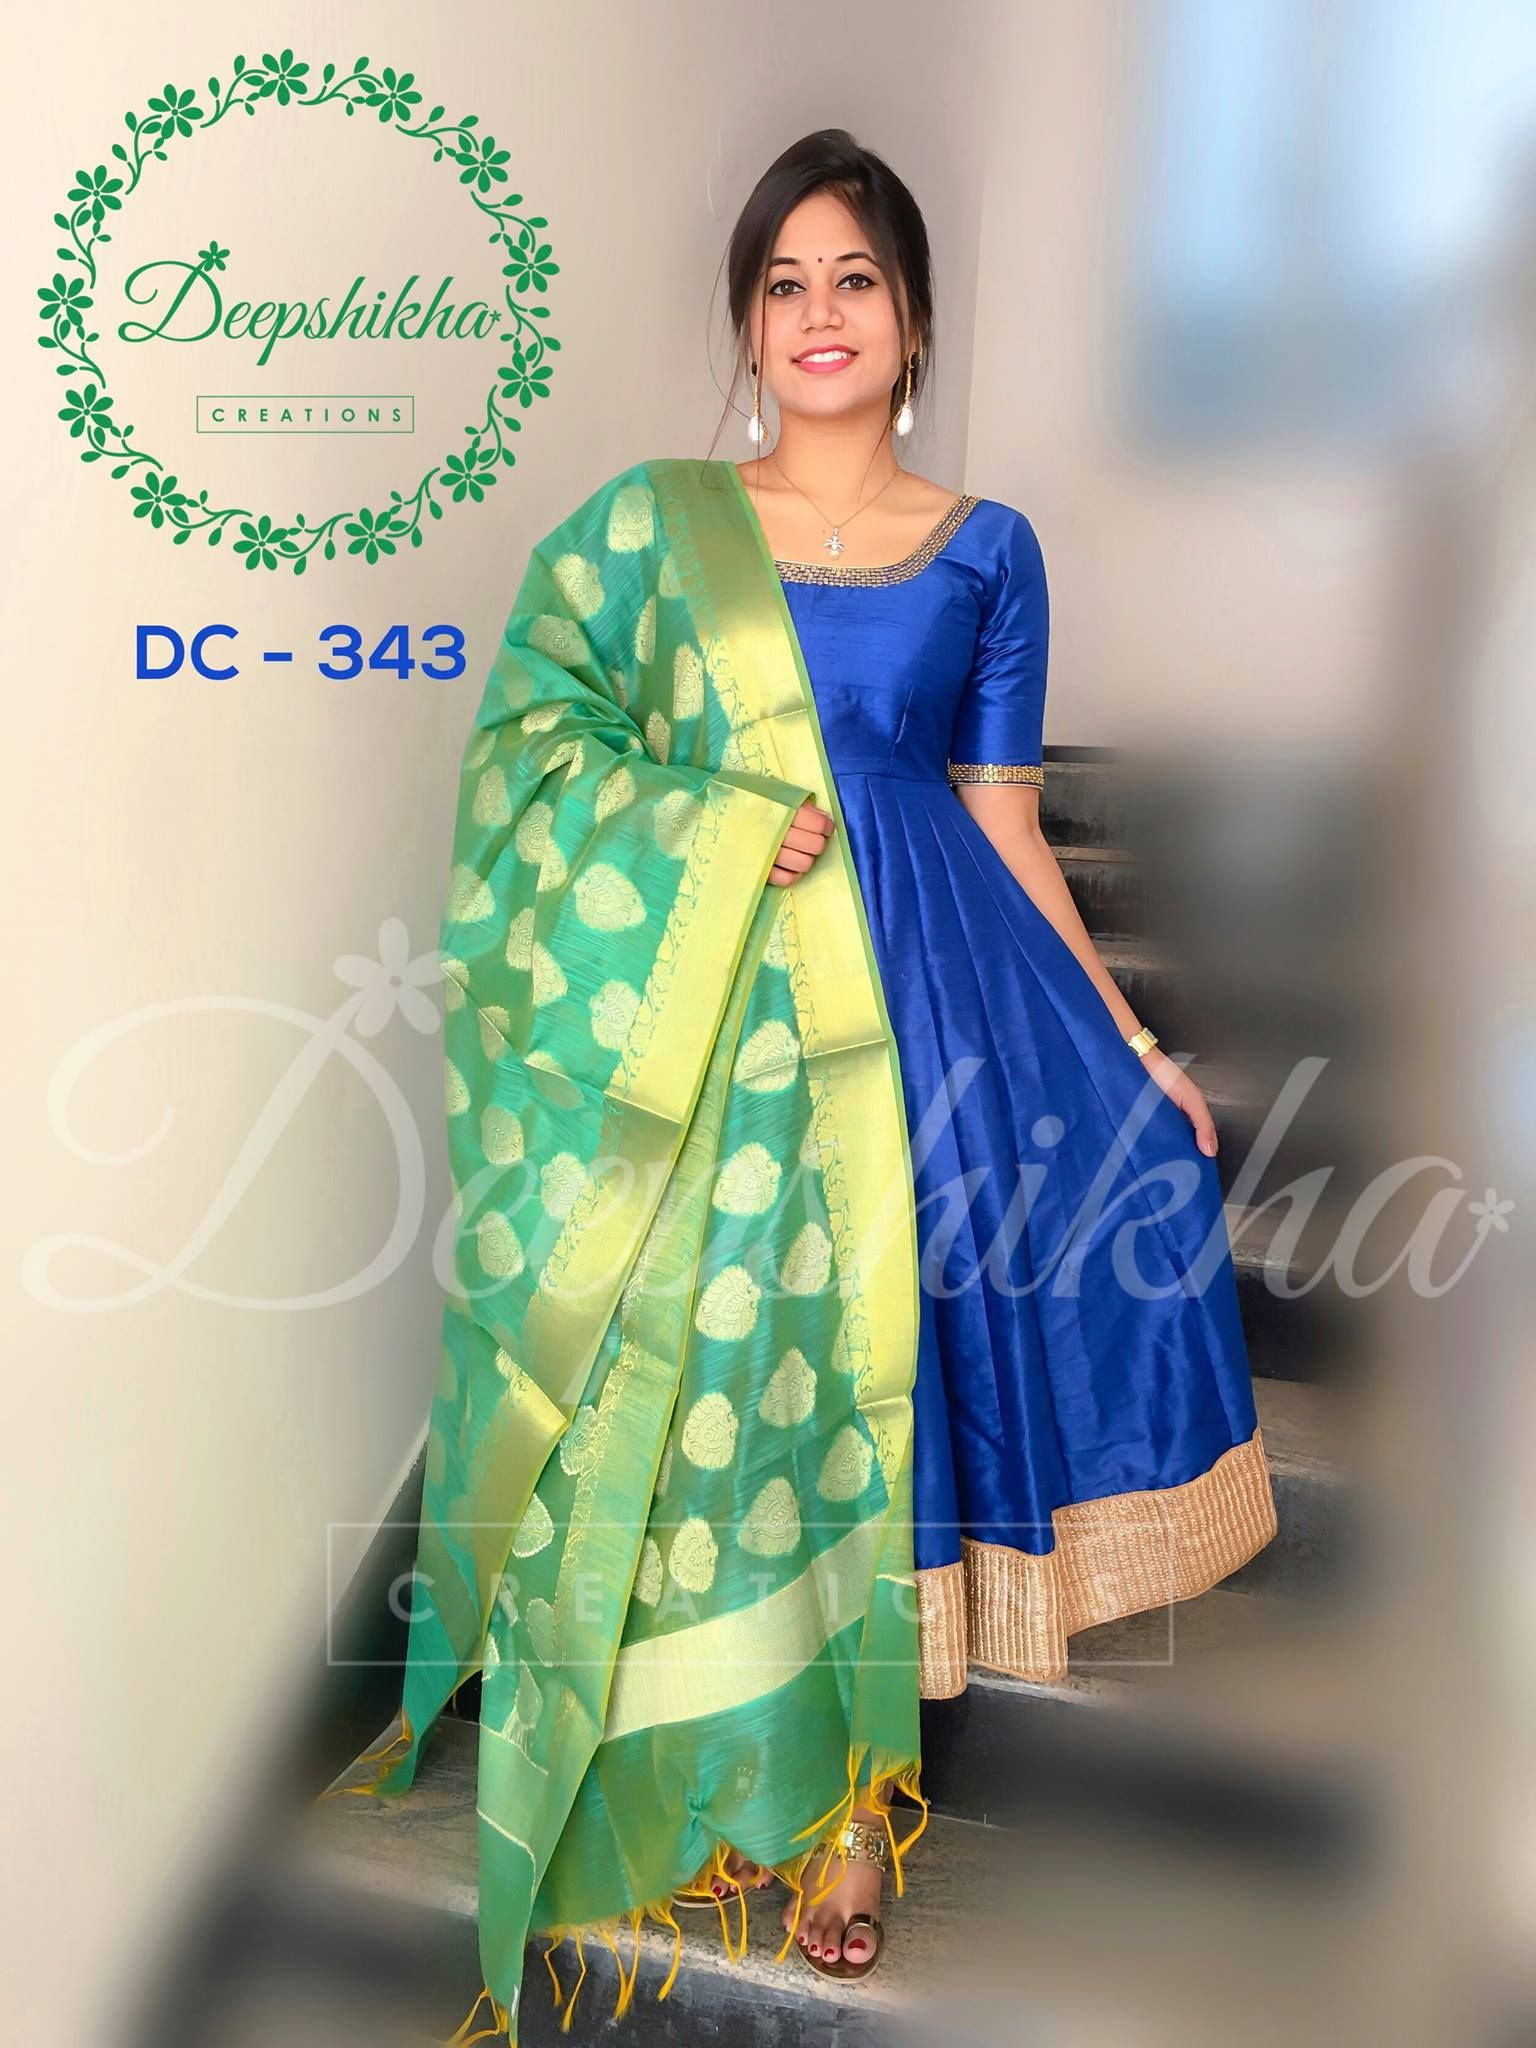 DC - 343 For queries kindly whatsapp : +91 9059683293